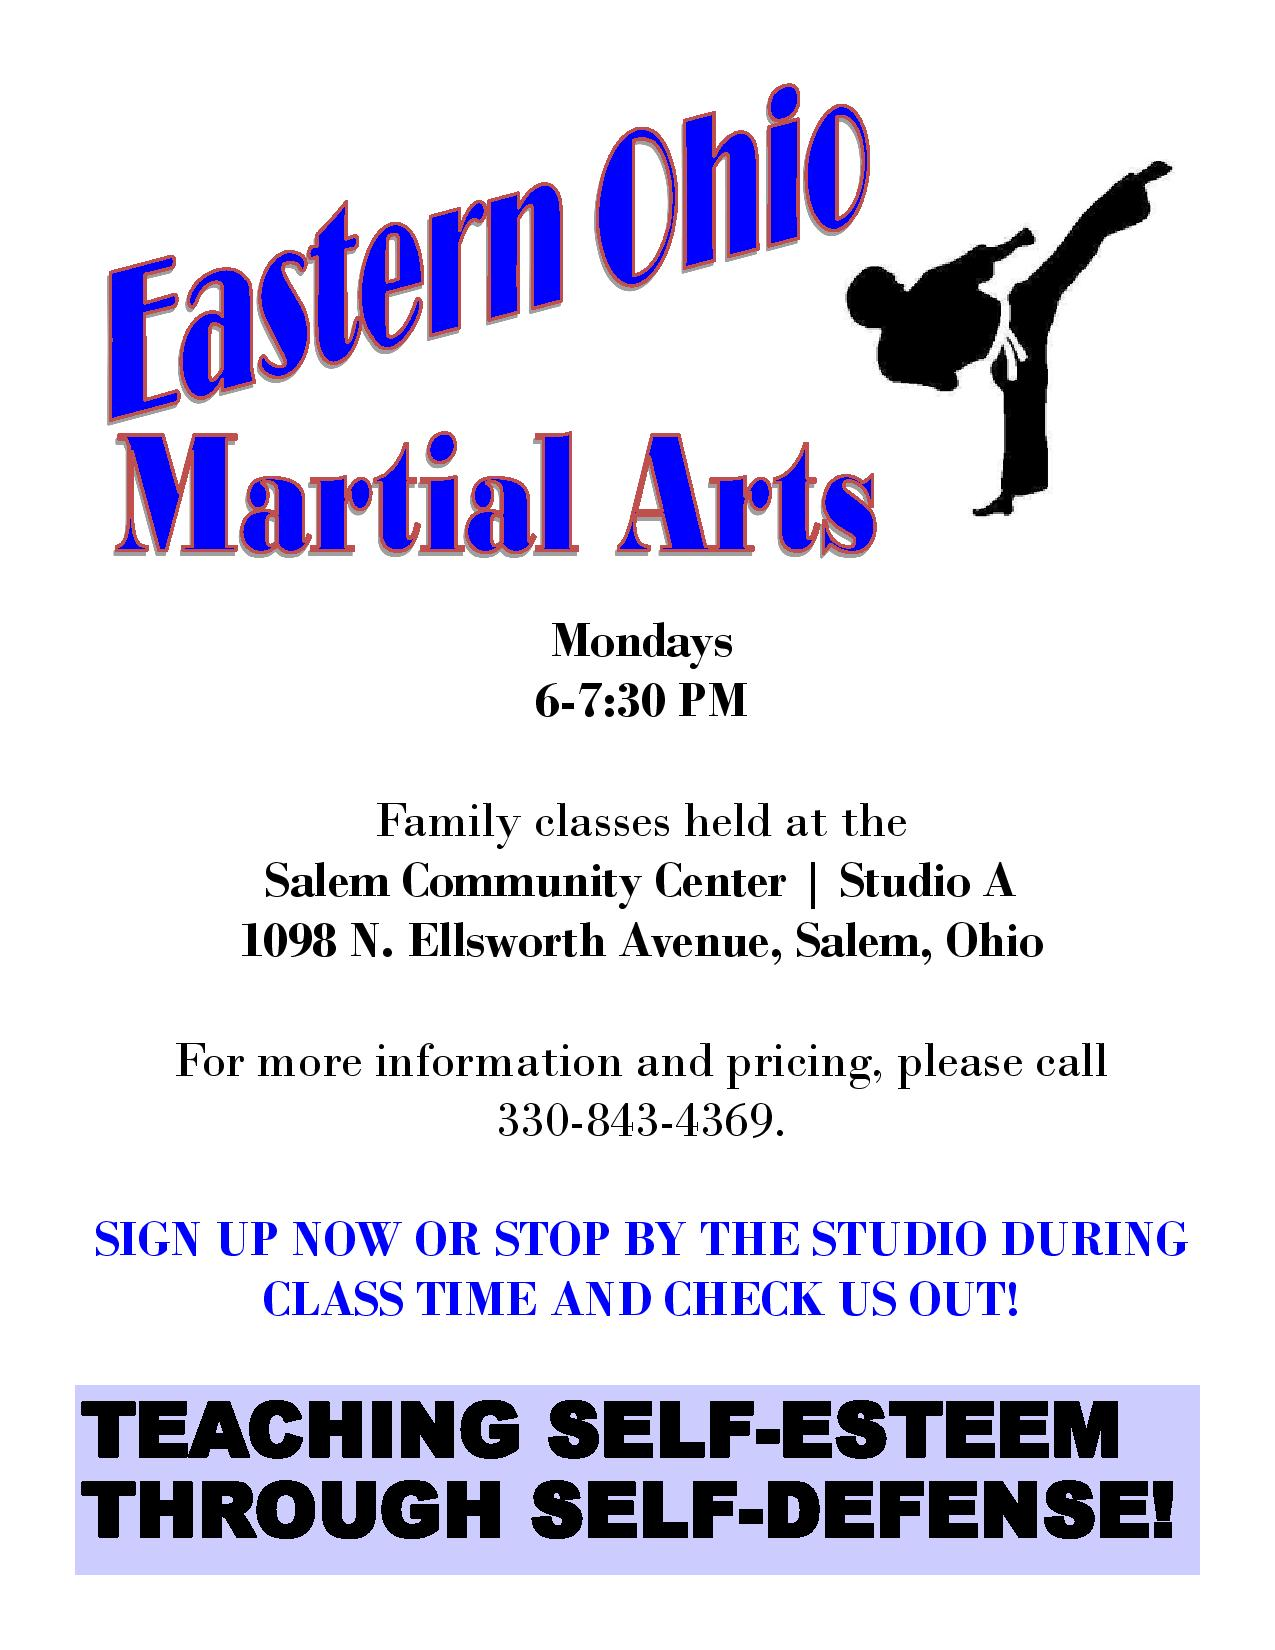 Eastern Ohio Martial Arts Flyer page 001